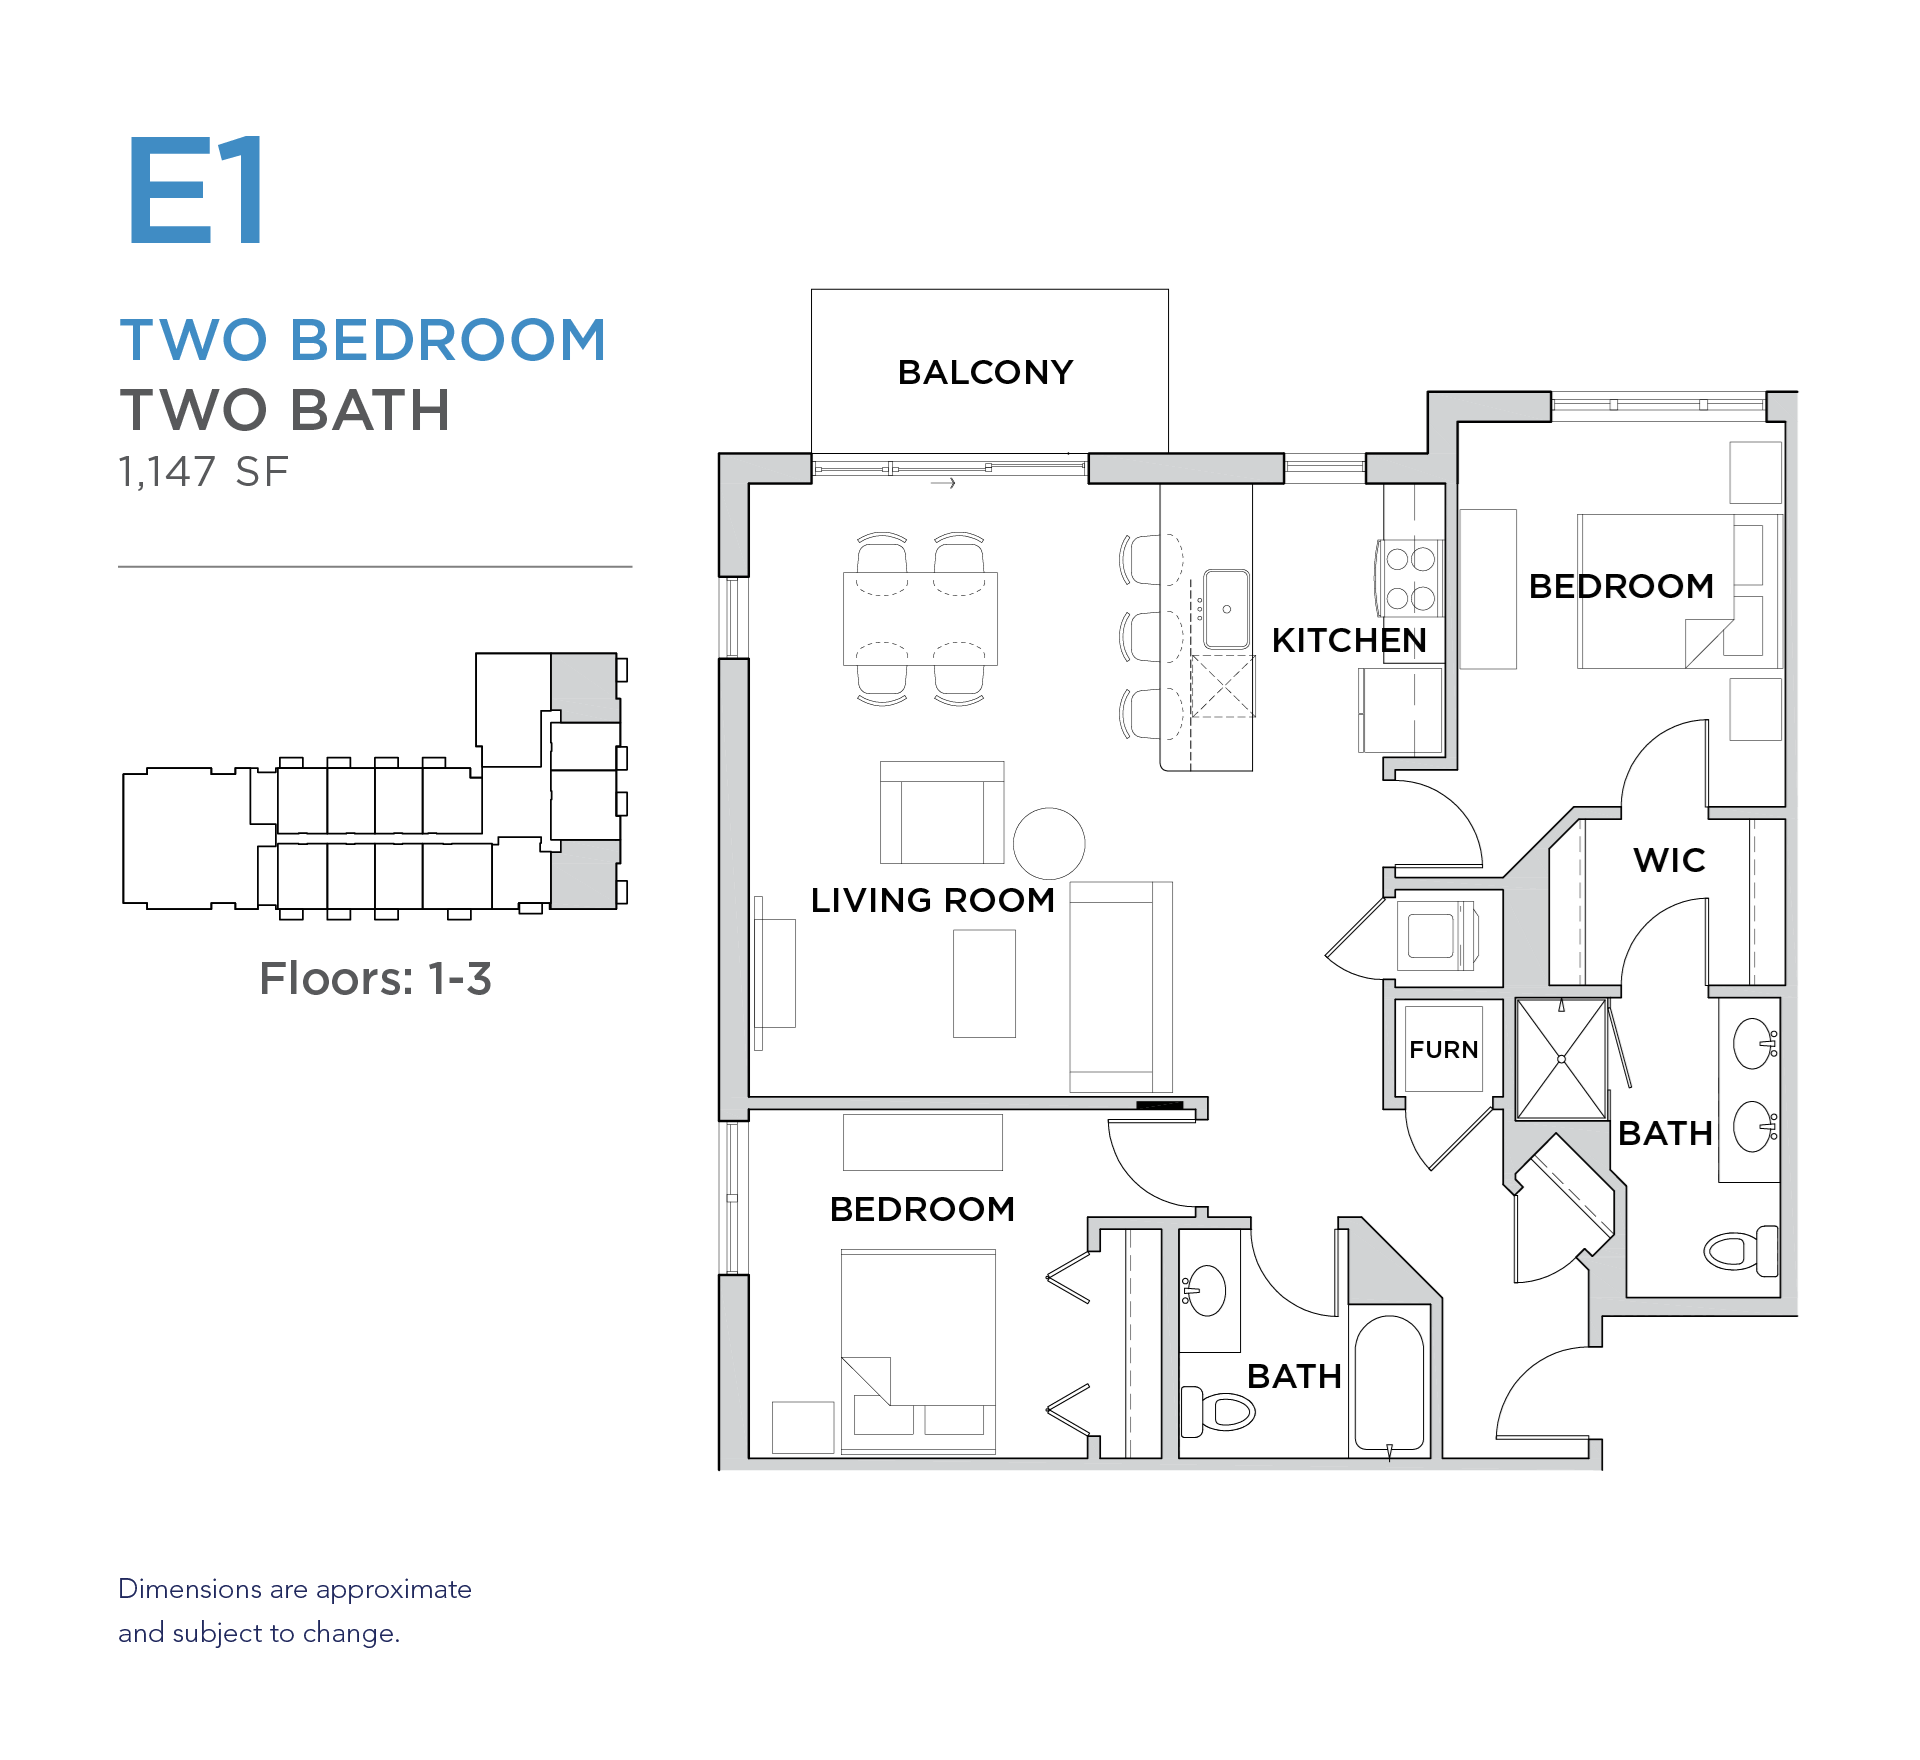 101 West 2 bed 2 bath 1,147 square foot apartment floor plan